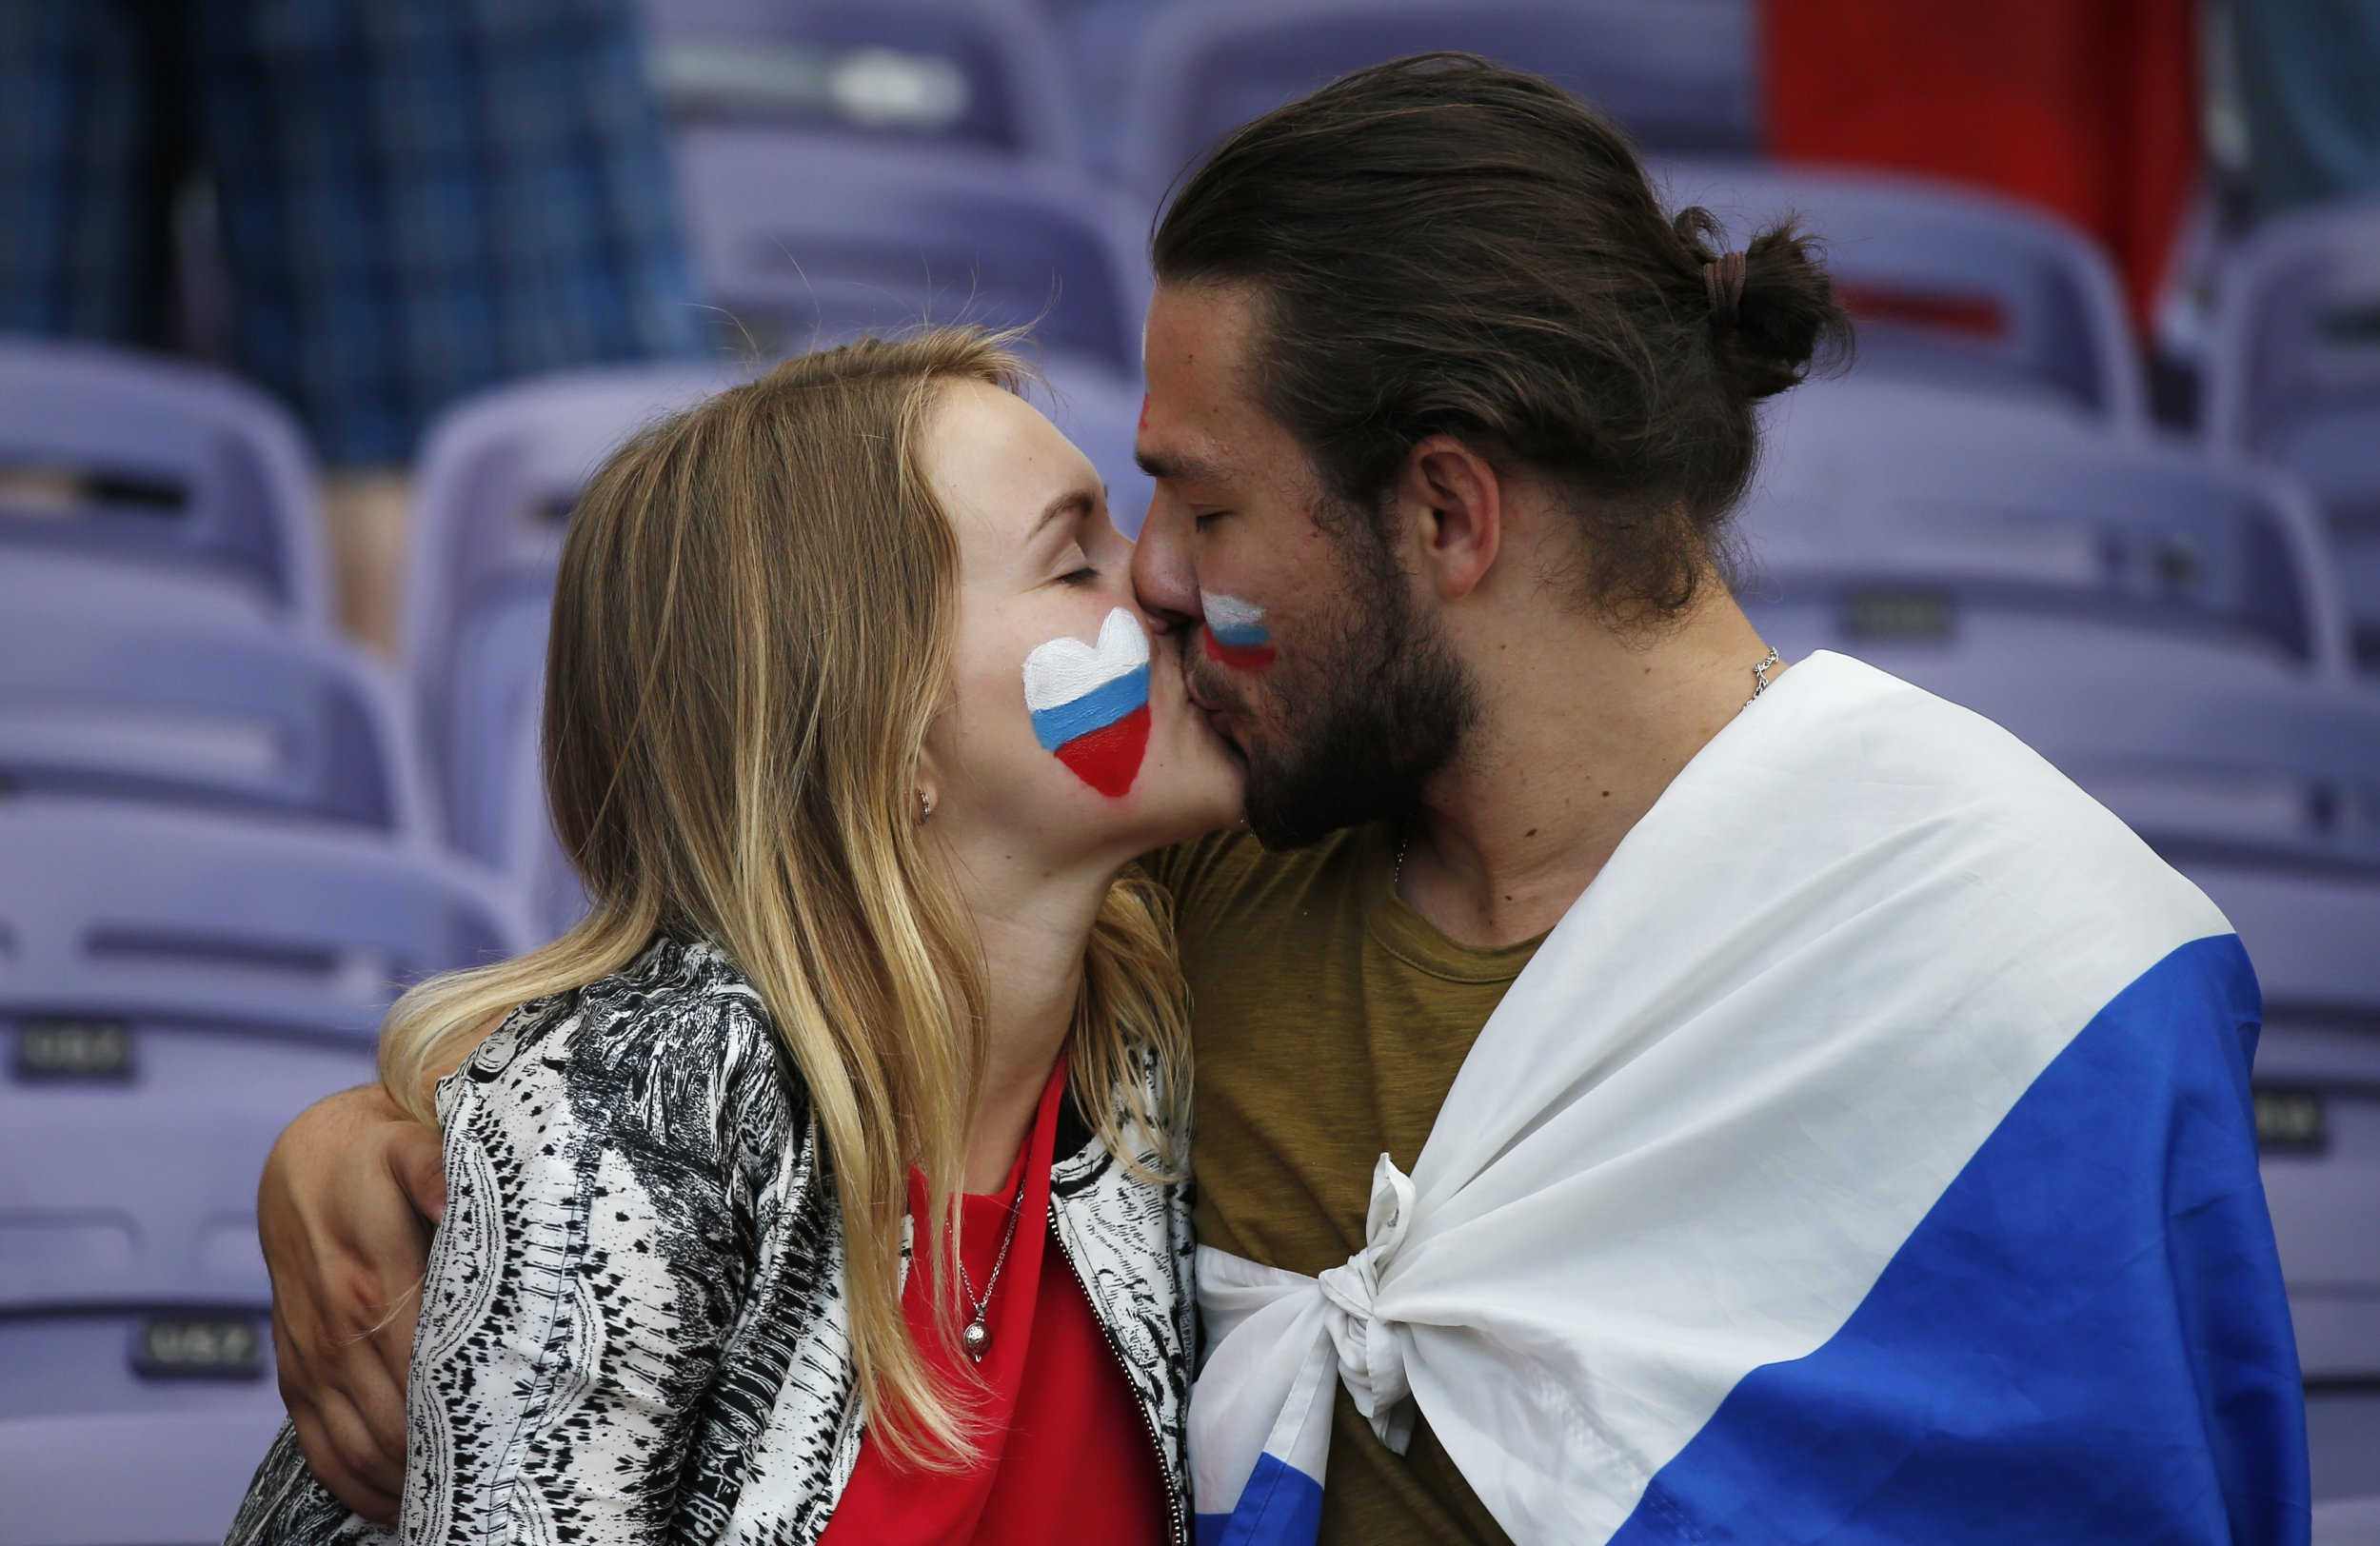 Russian Women Told To Refuse Sex To Foreigners During World Cup